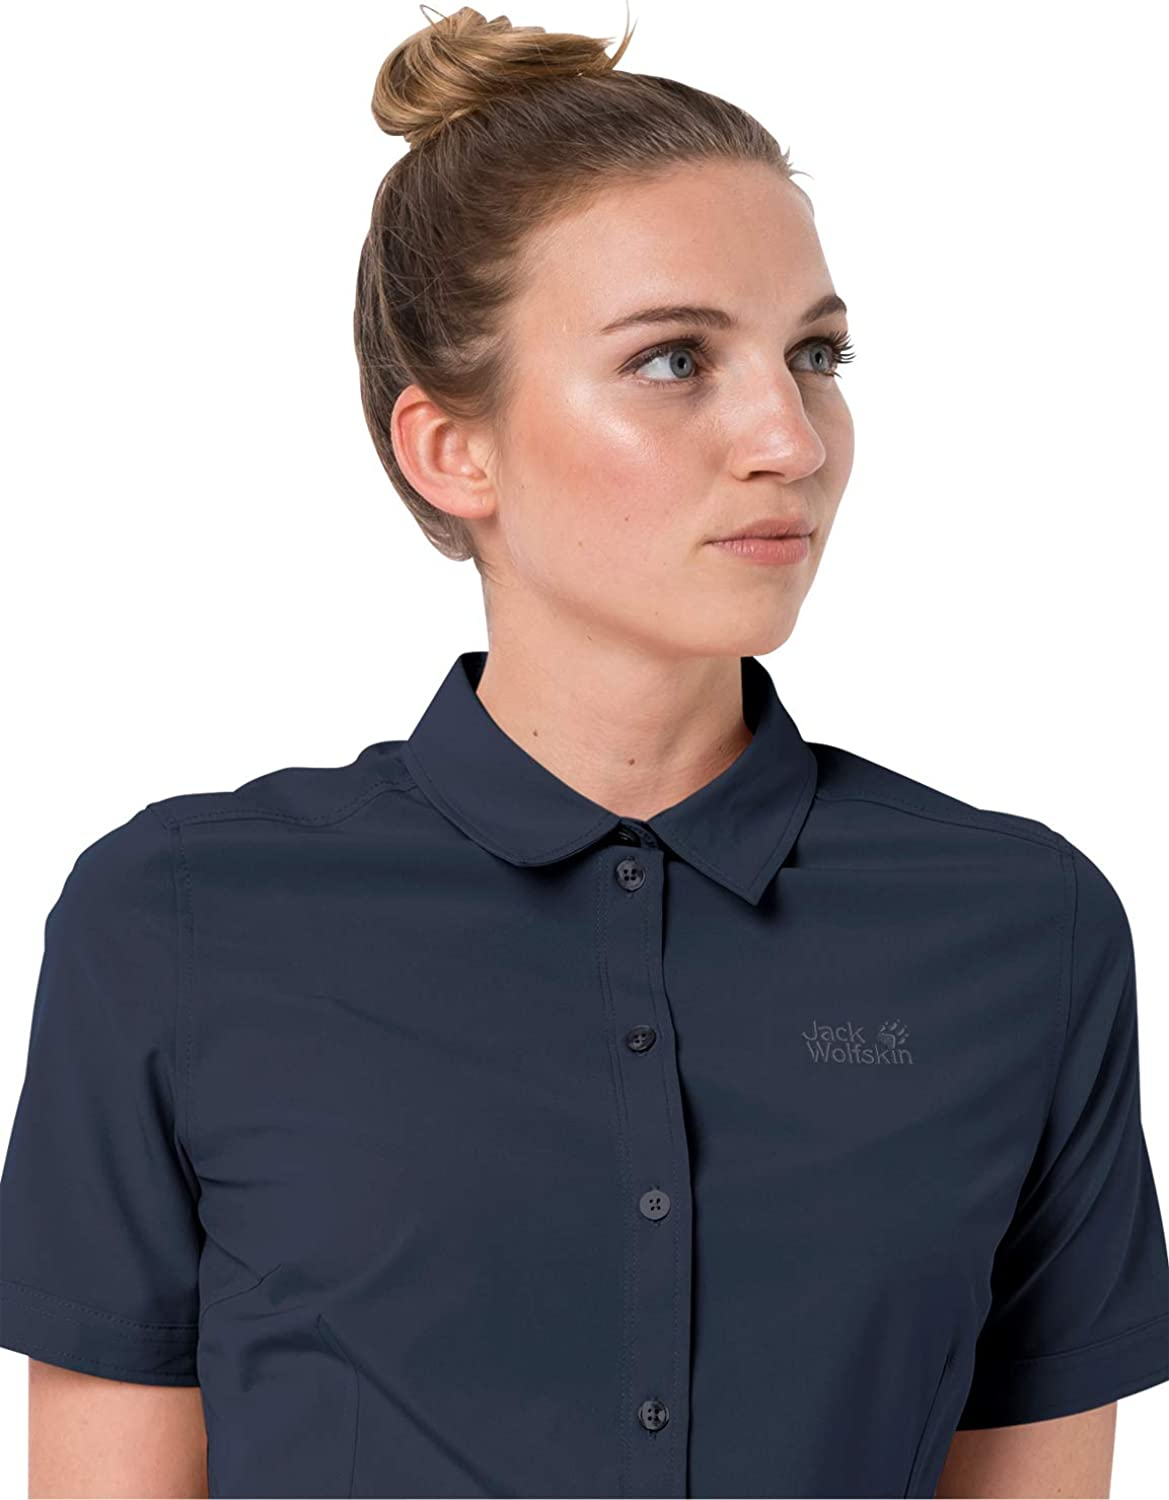 Jack Wolfskin Women's Sonora Short Sleeve Shirt with Uv Protection